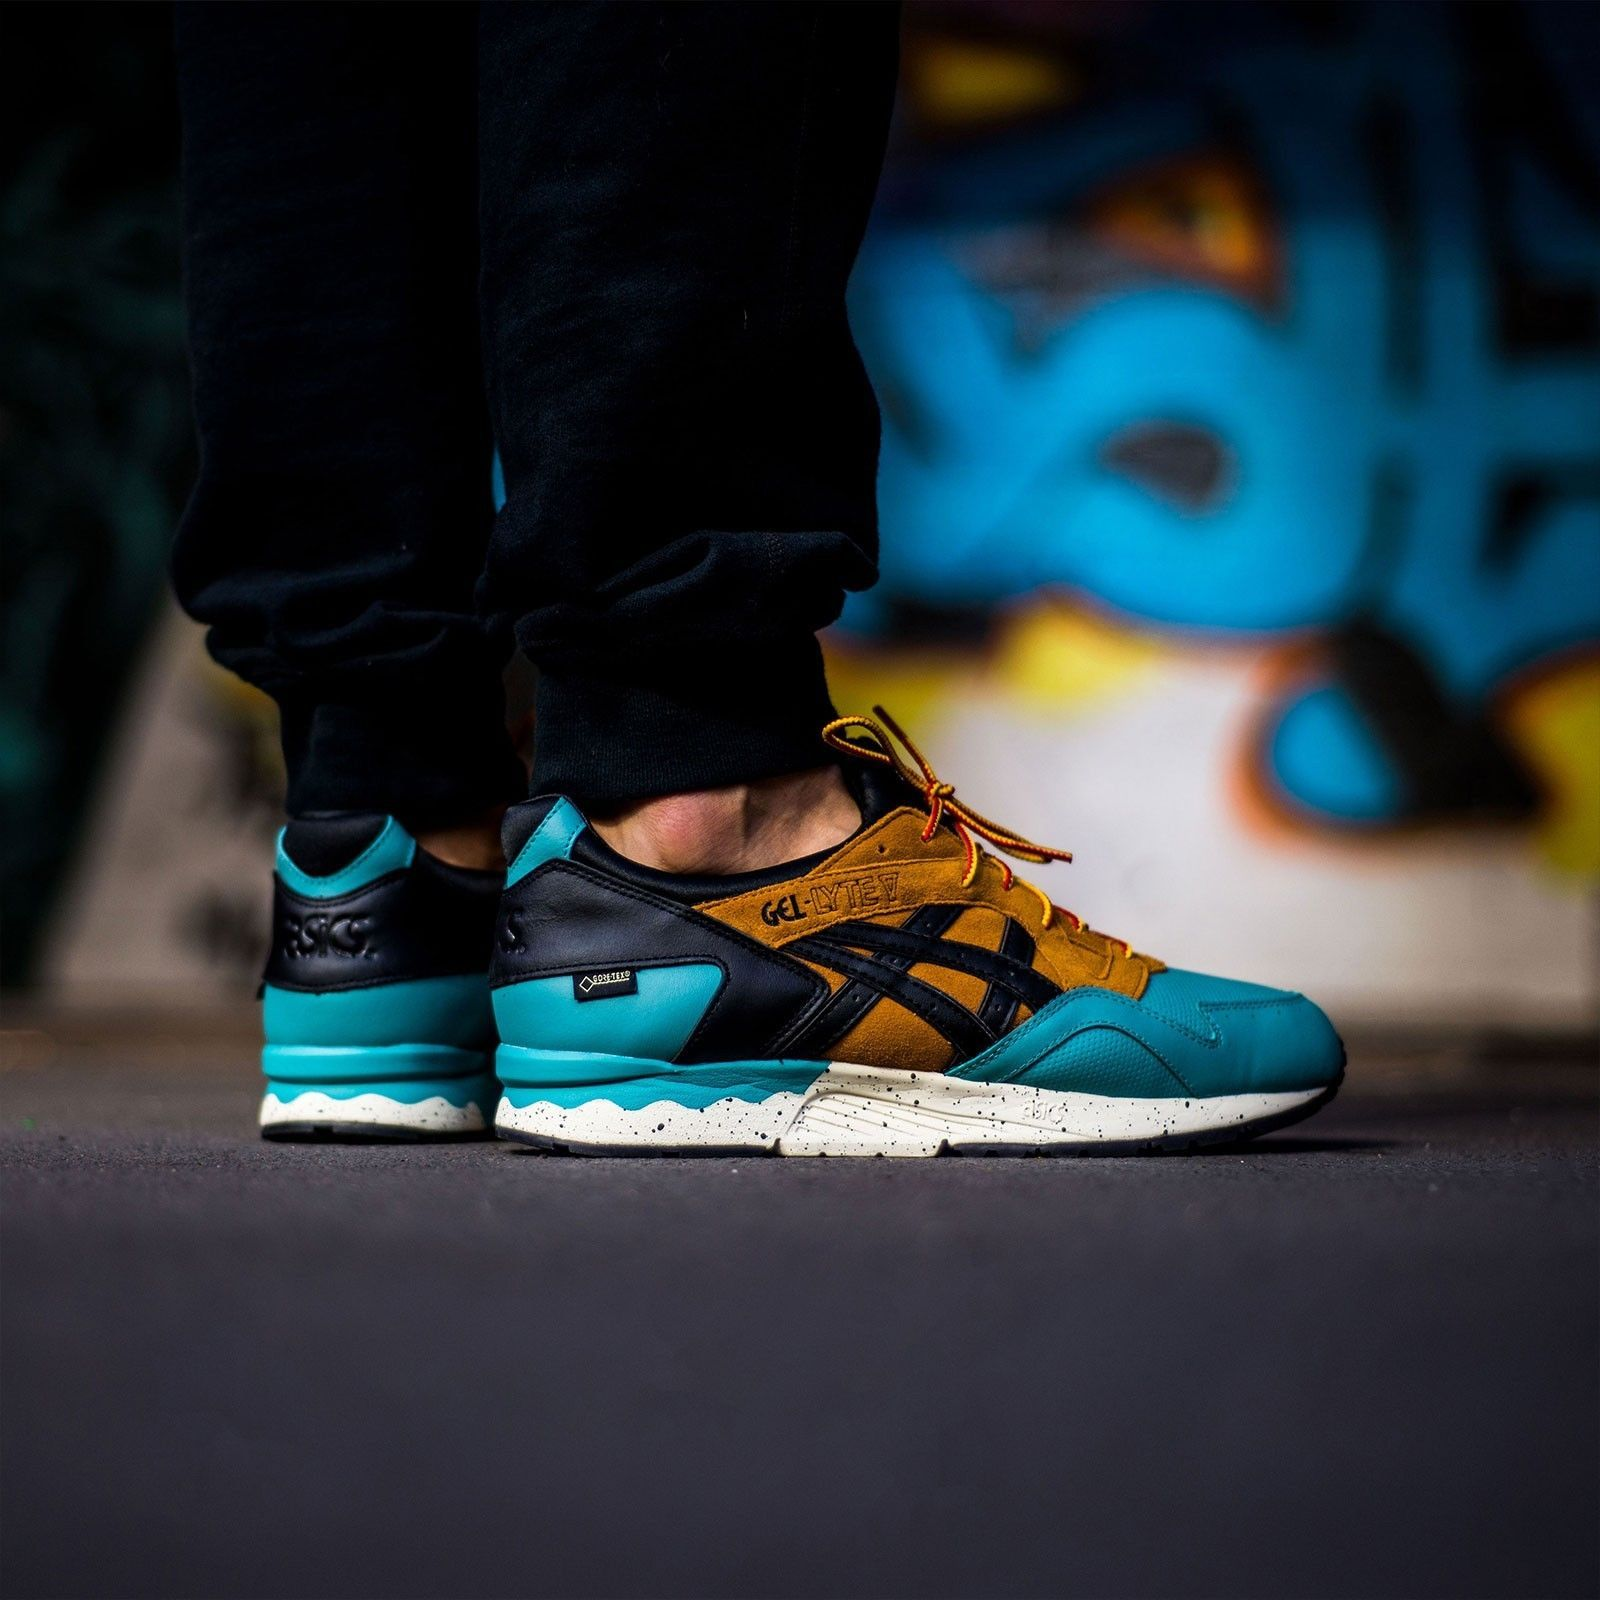 bf6651adb49f Asics Tiger Gel-Lyte V GTX Gore Tex Sneakers Men s Lifestyle Shoes  WATERPROOF